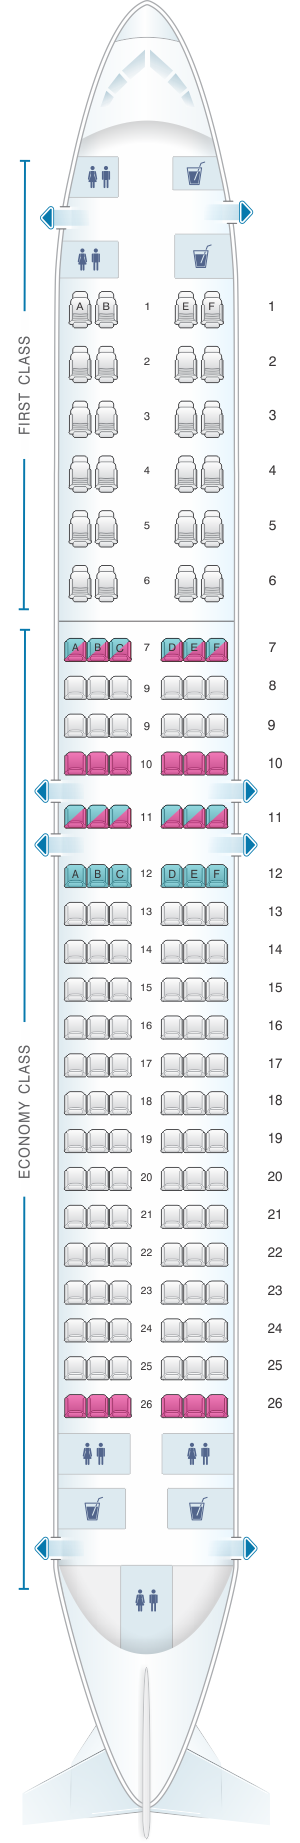 Seat map for Air Algerie Boeing B737-800 config 2